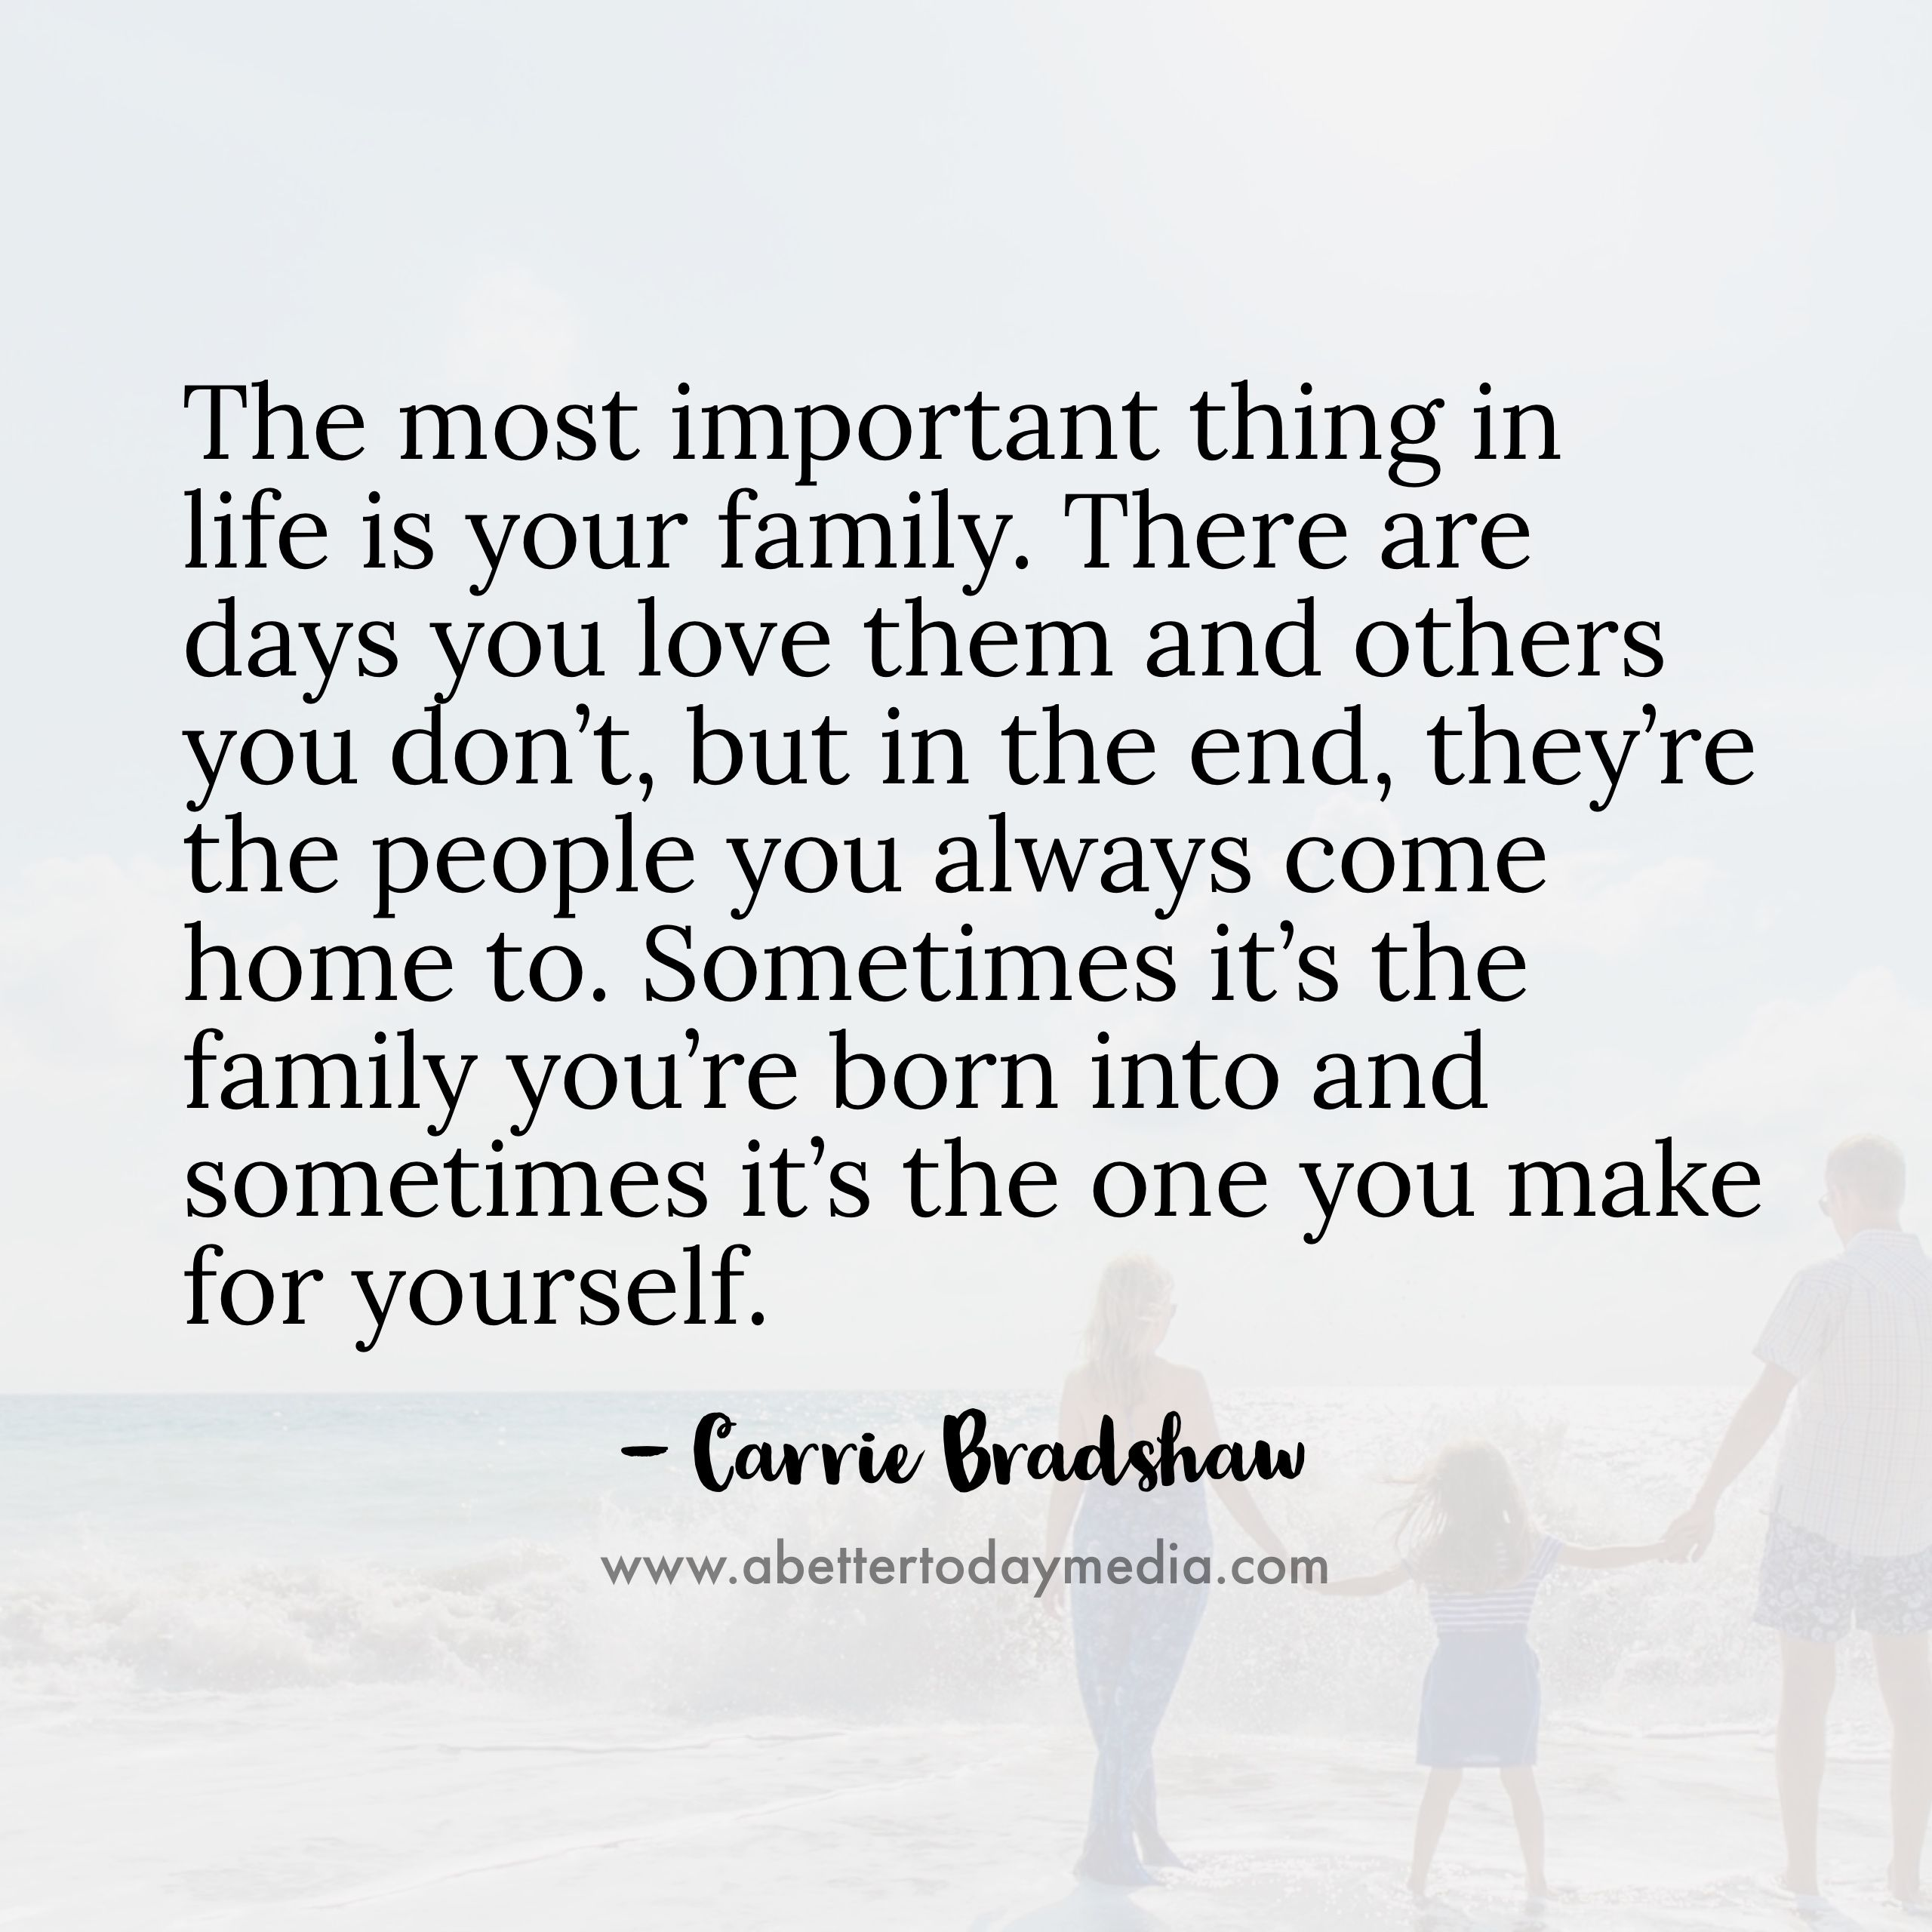 Quotes To Live Your Life By 10 Carrie Bradshaw Quotes To Live Your Life Quotes